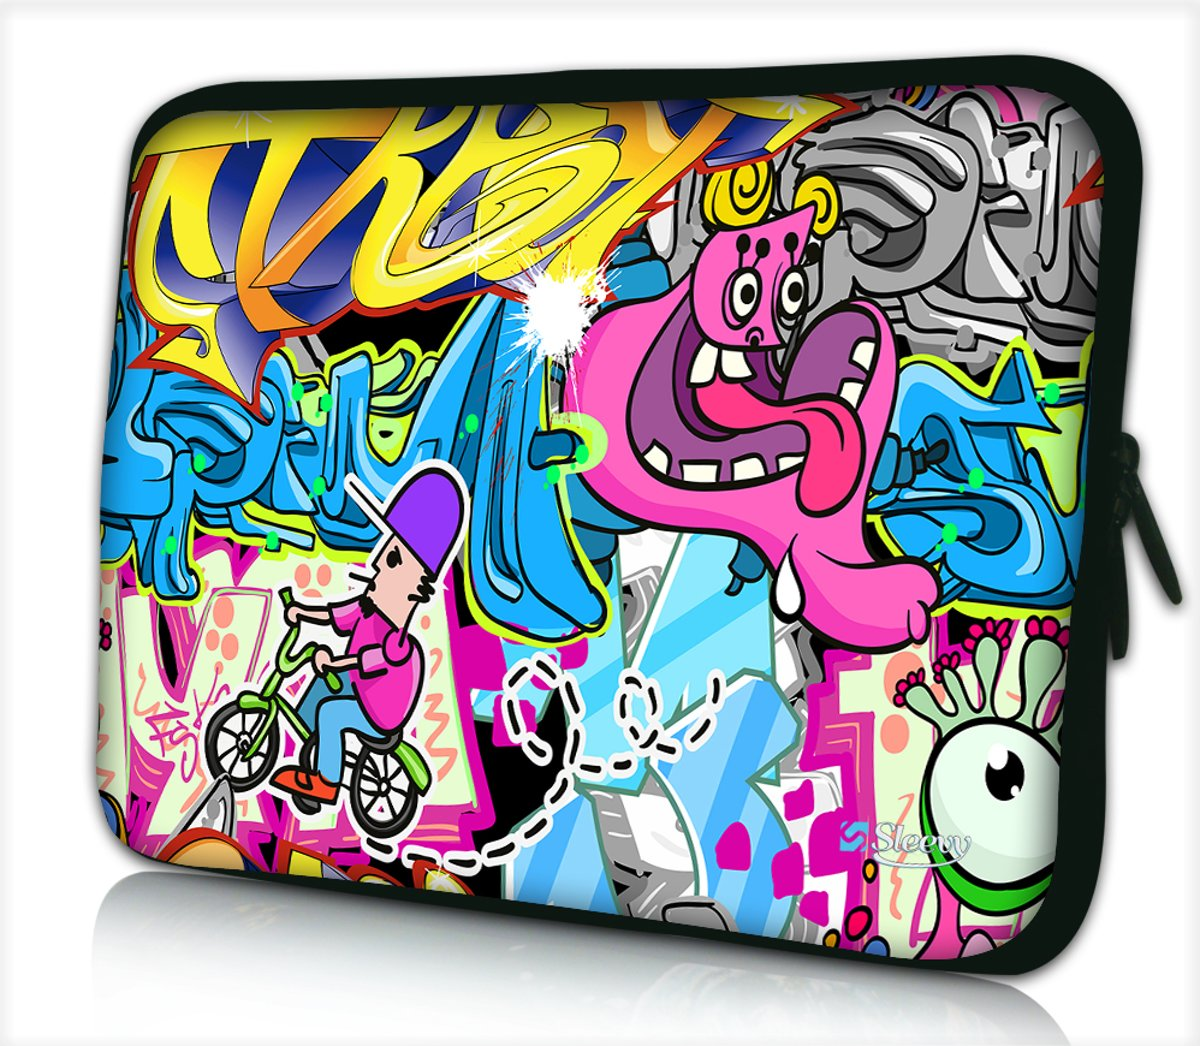 Laptophoes 17,3 inch hiphop cartoon - Sleevy - Laptop sleeve - Macbook hoes - beschermhoes